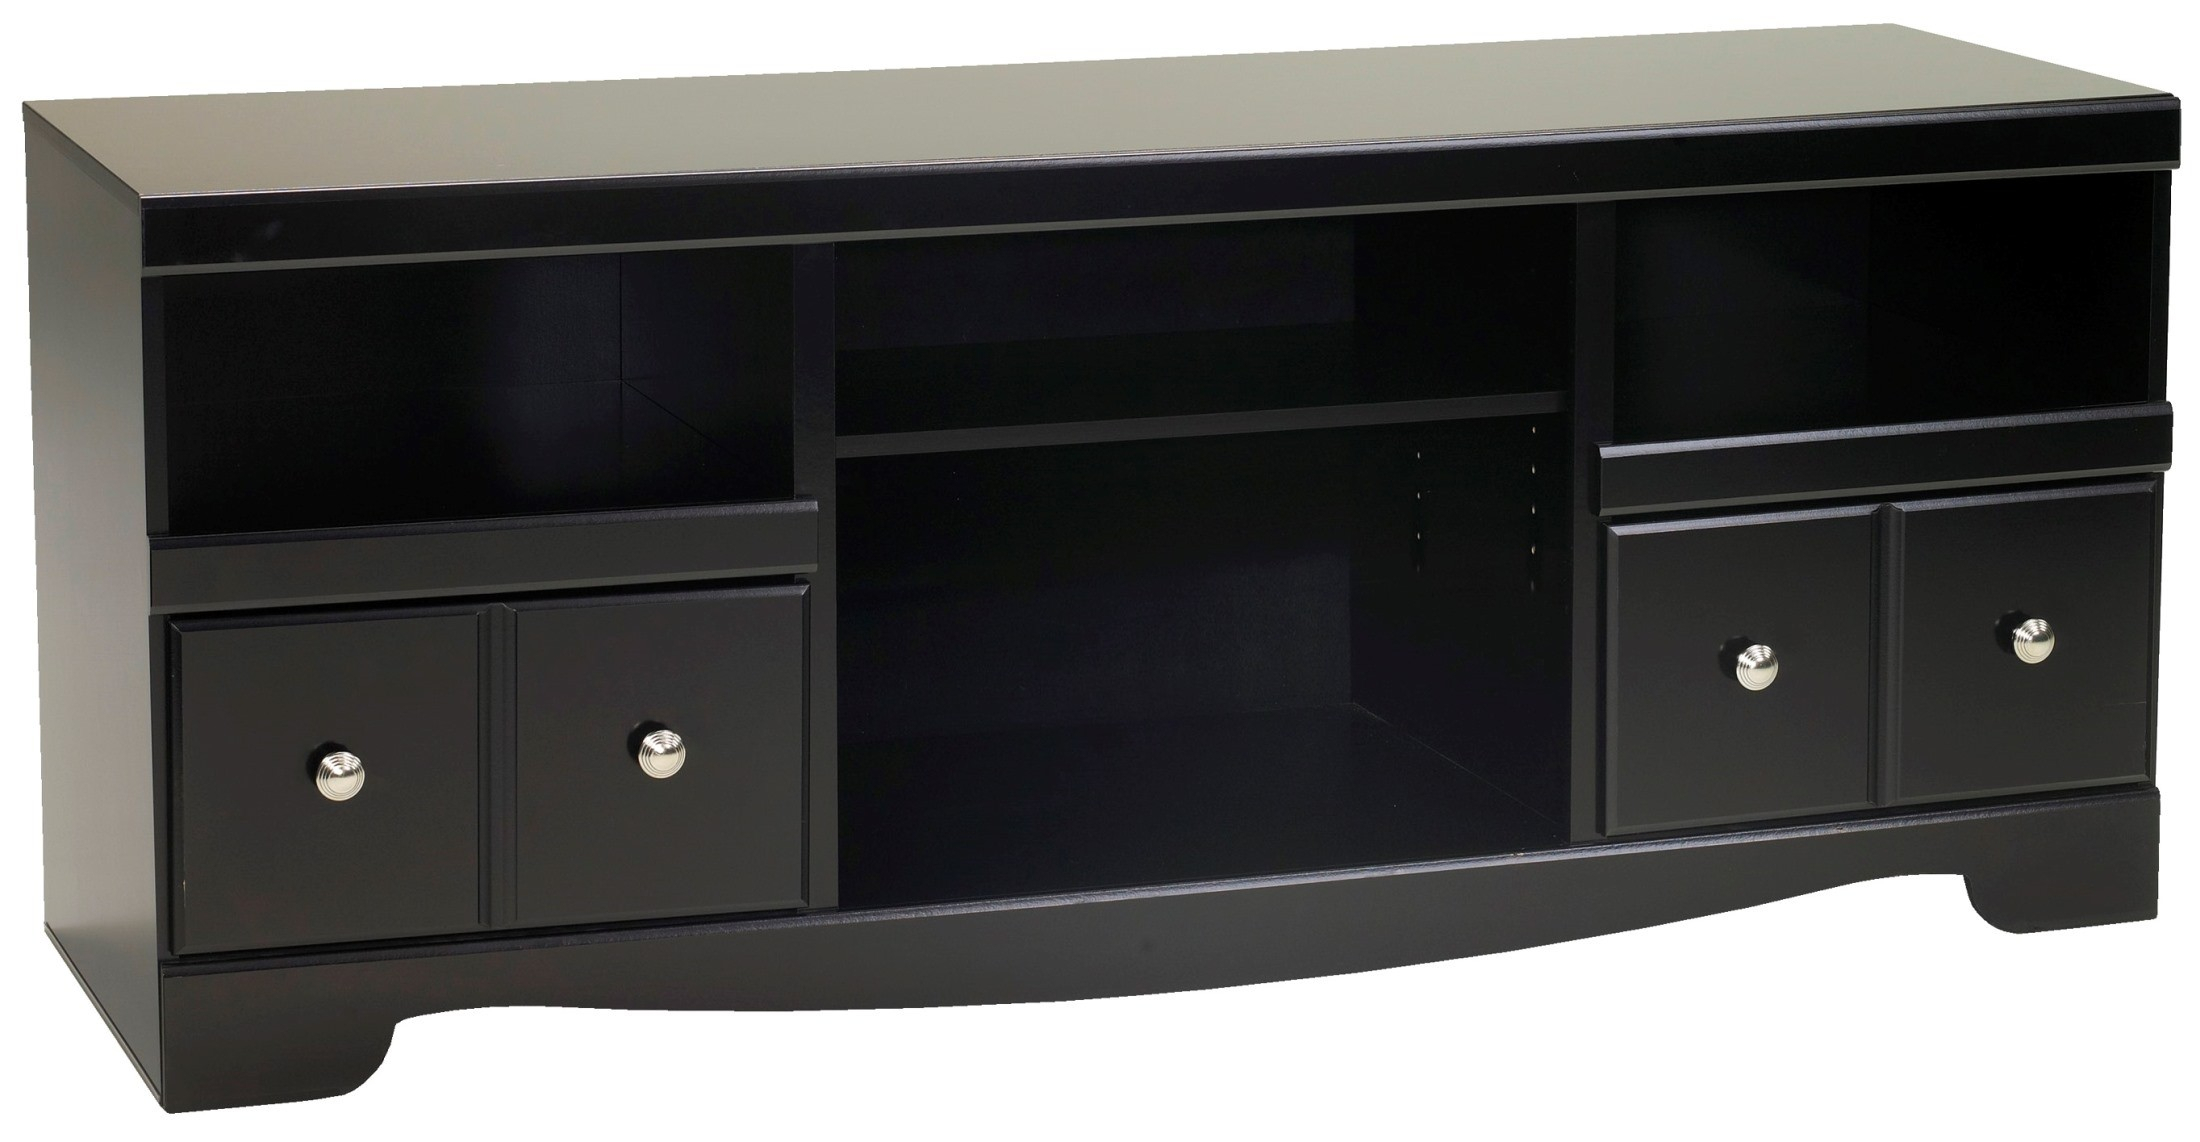 Shay Large Tv Stand W/ Opening To Add Optional Fireplace Within Vista 68 Inch Tv Stands (View 10 of 30)